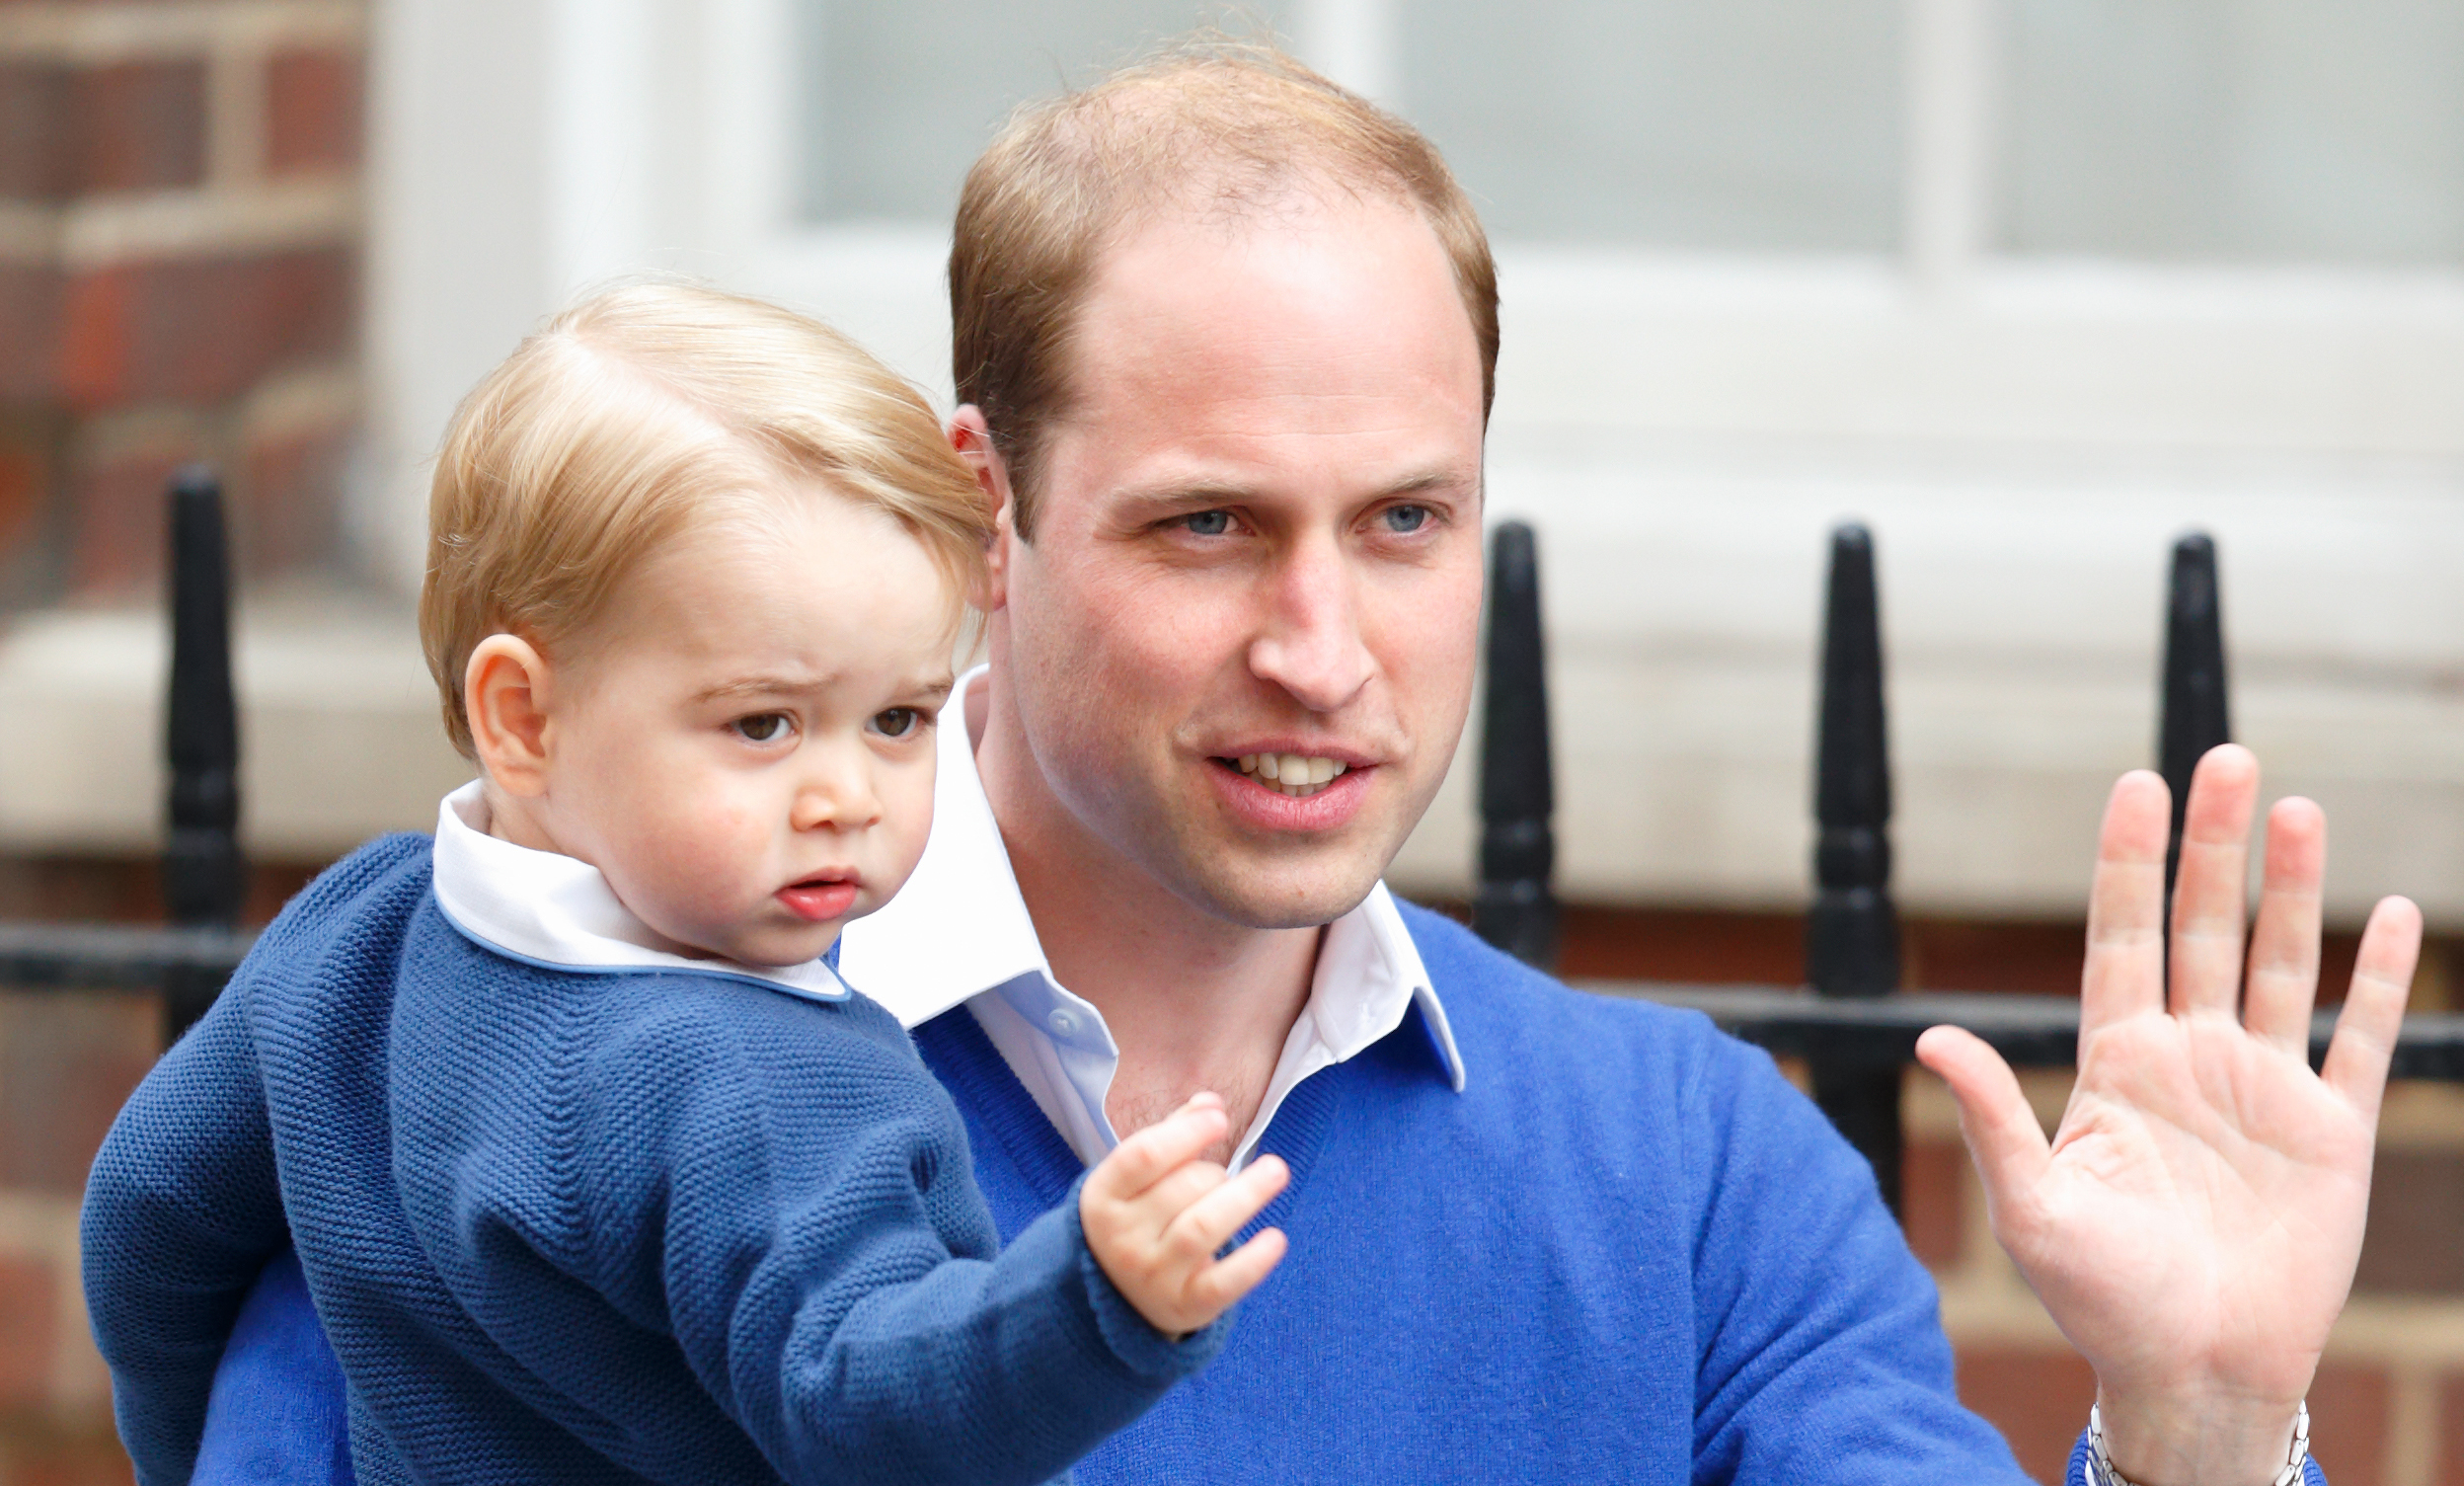 Prince William pens Father's Day essay on importance of mental health care for children